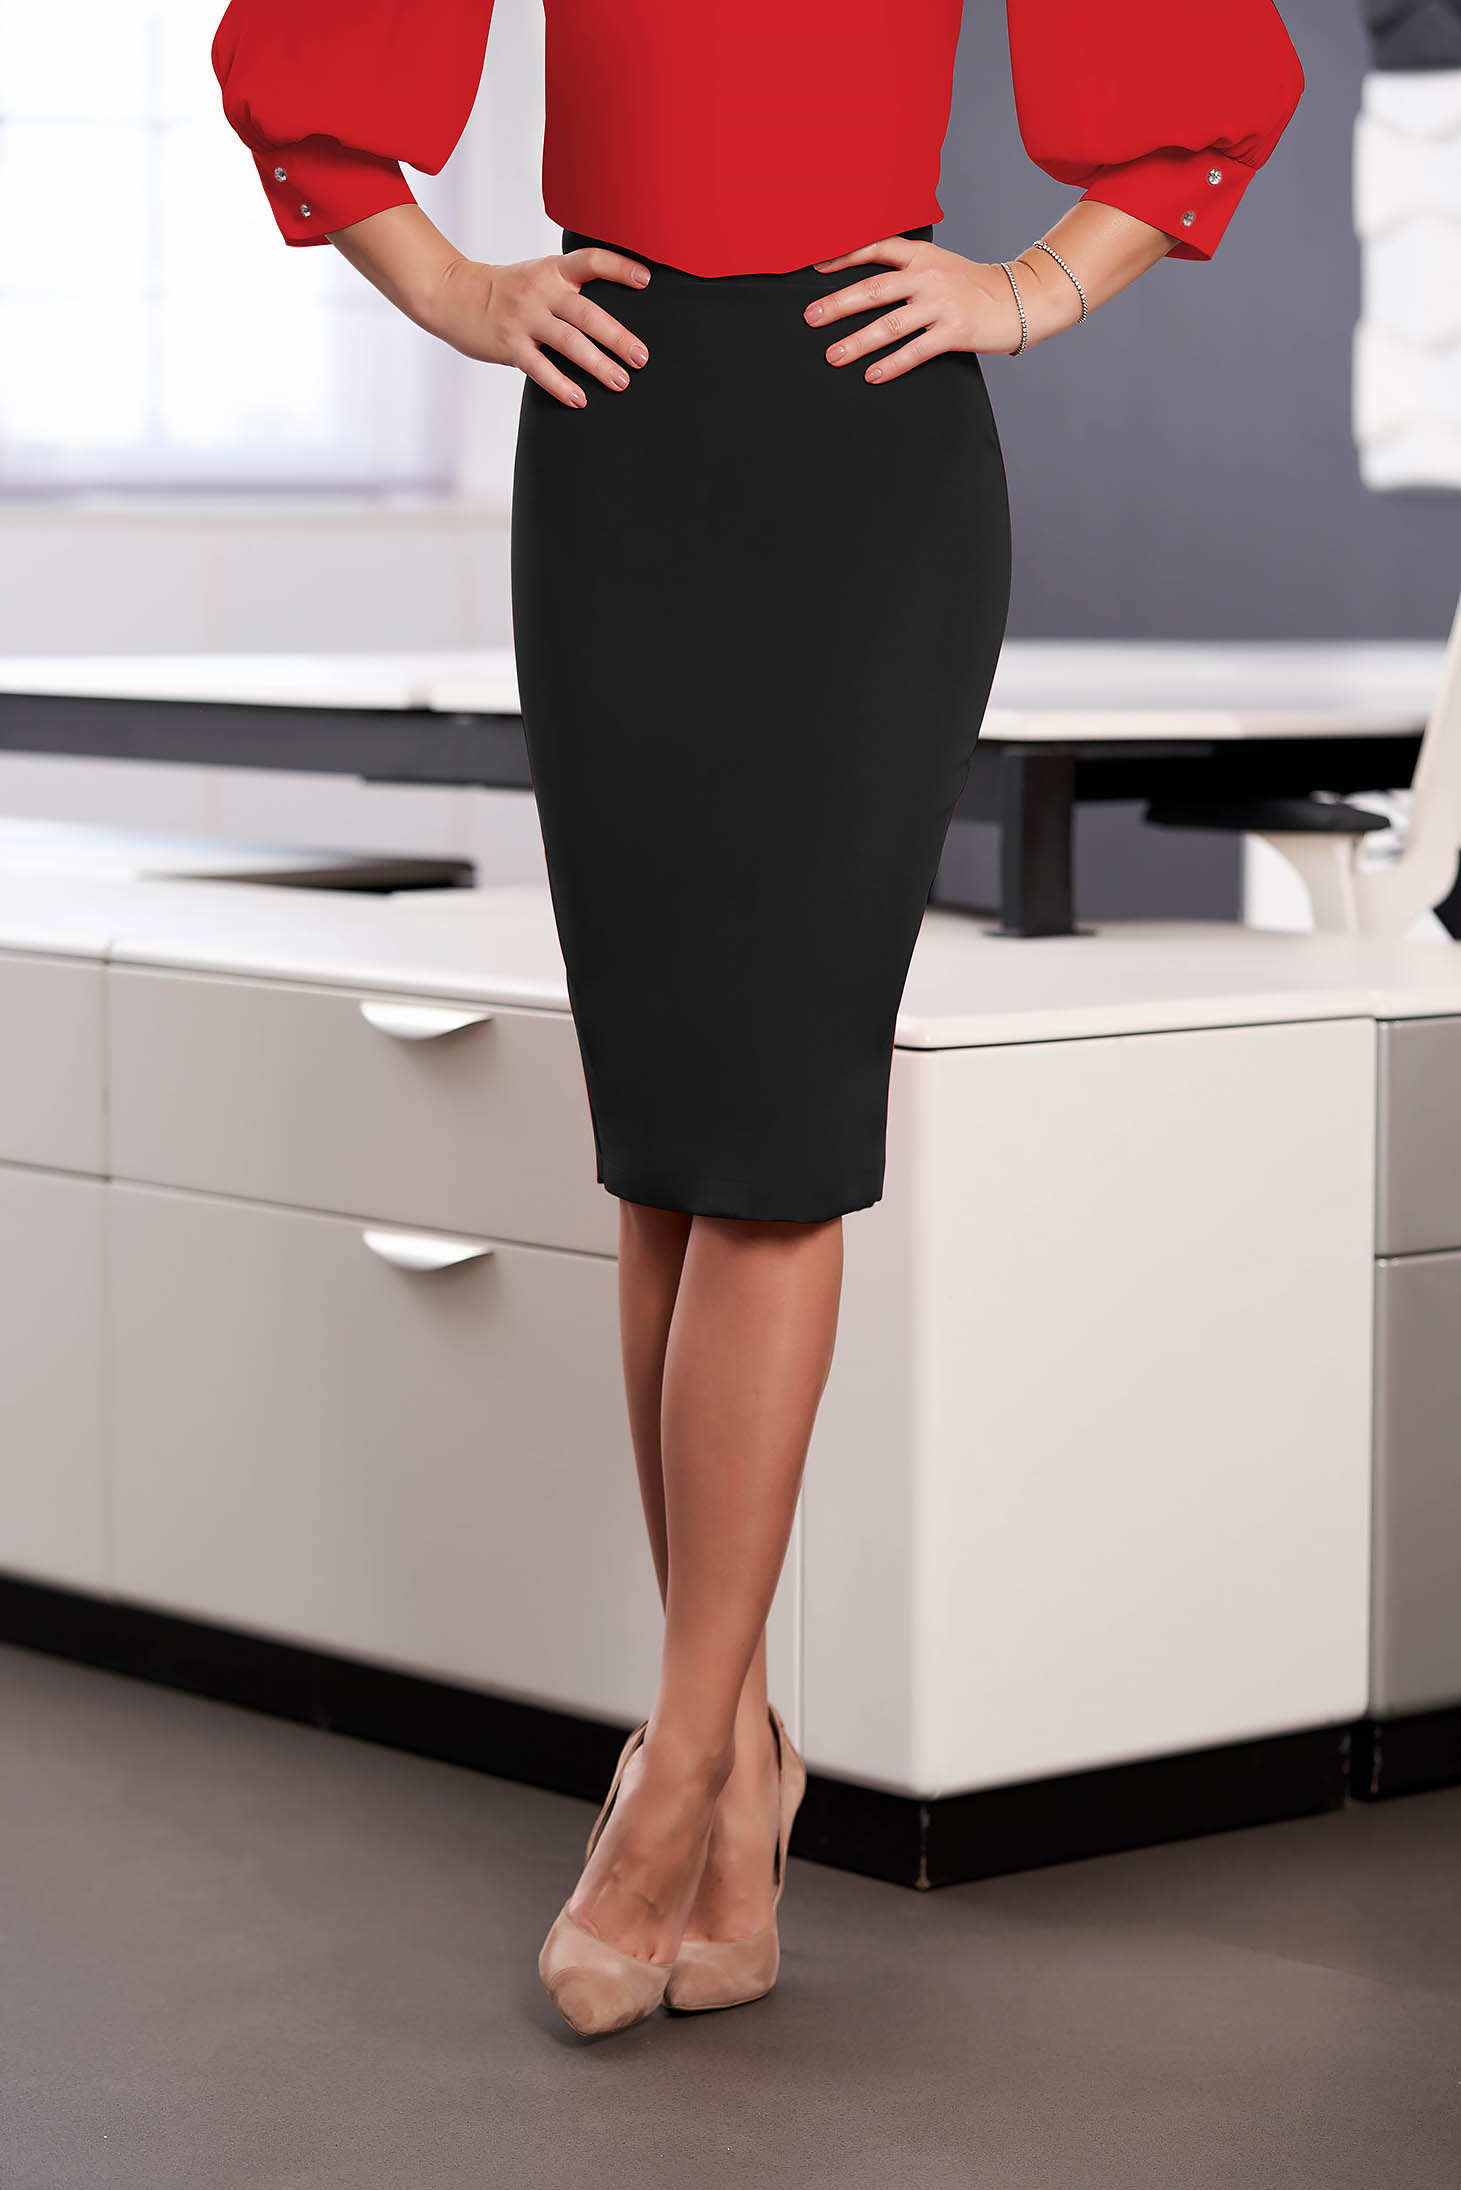 Fusta StarShinerS neagra office tip creion cu talie inalta din material usor elastic